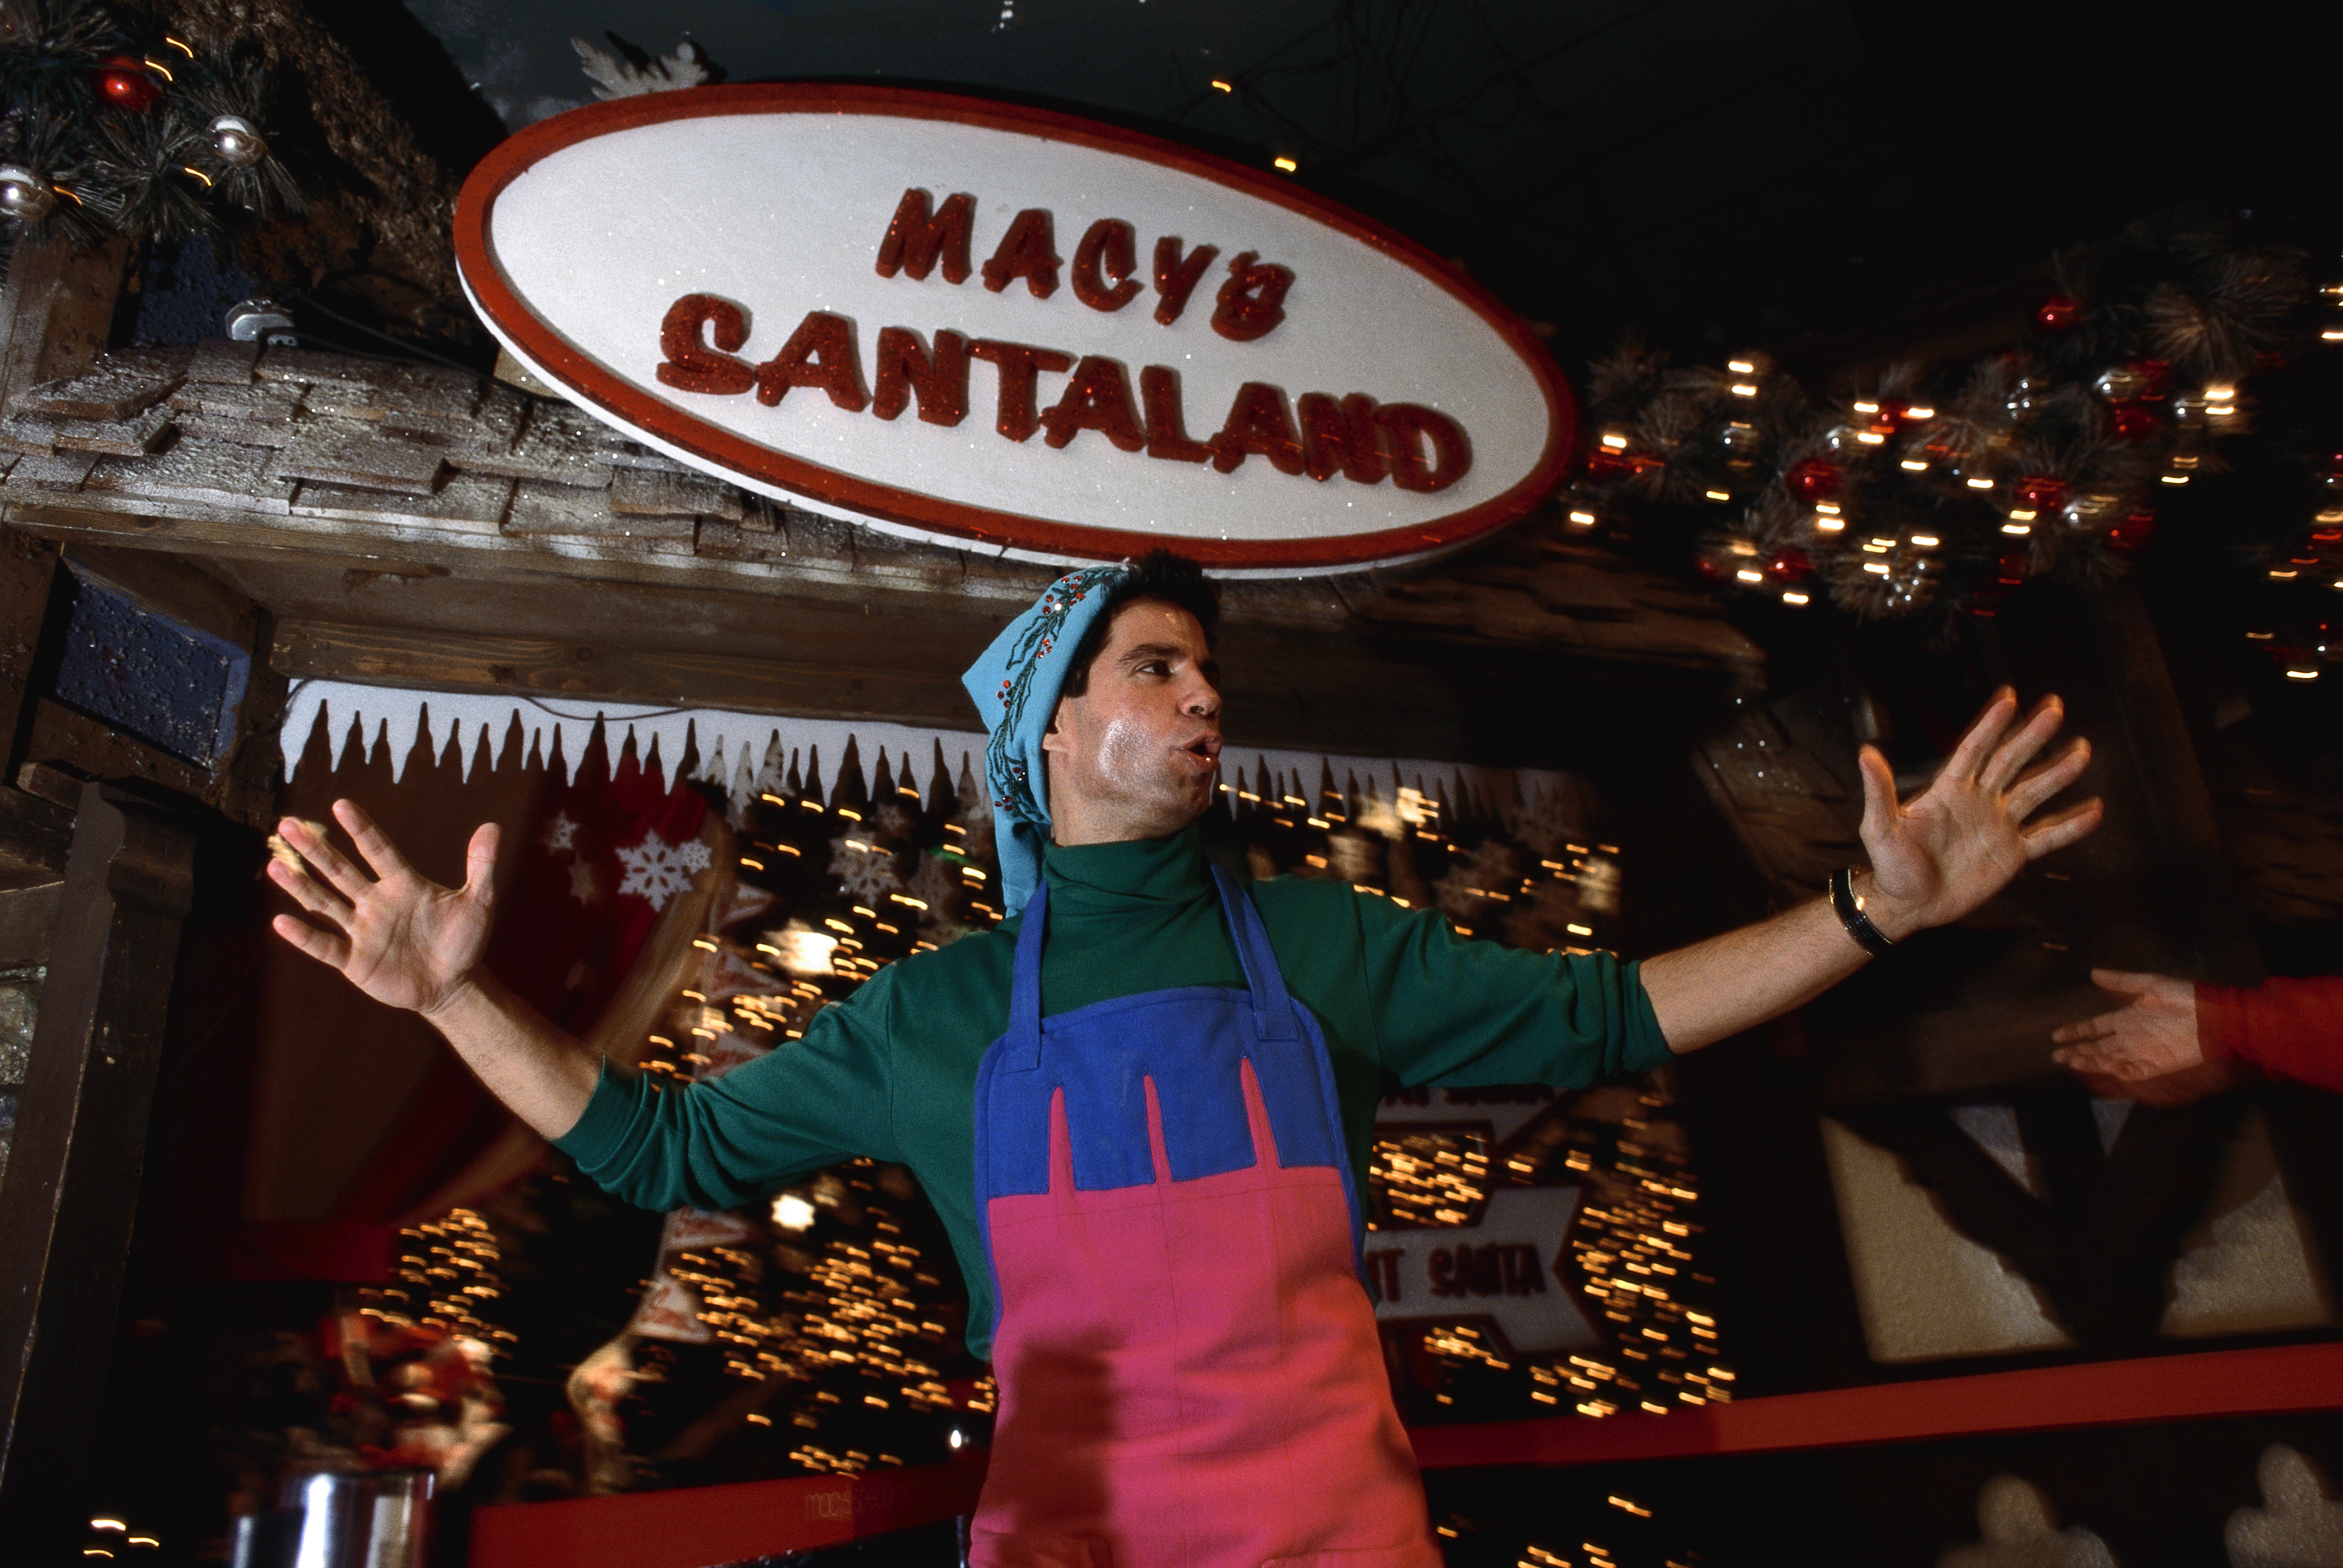 An  elf  in an apron and hat greets visitors to Macy's Santaland in the New York Macy's store during the Christmas season. (Photo by mark peterson/Corbis via Getty Images)